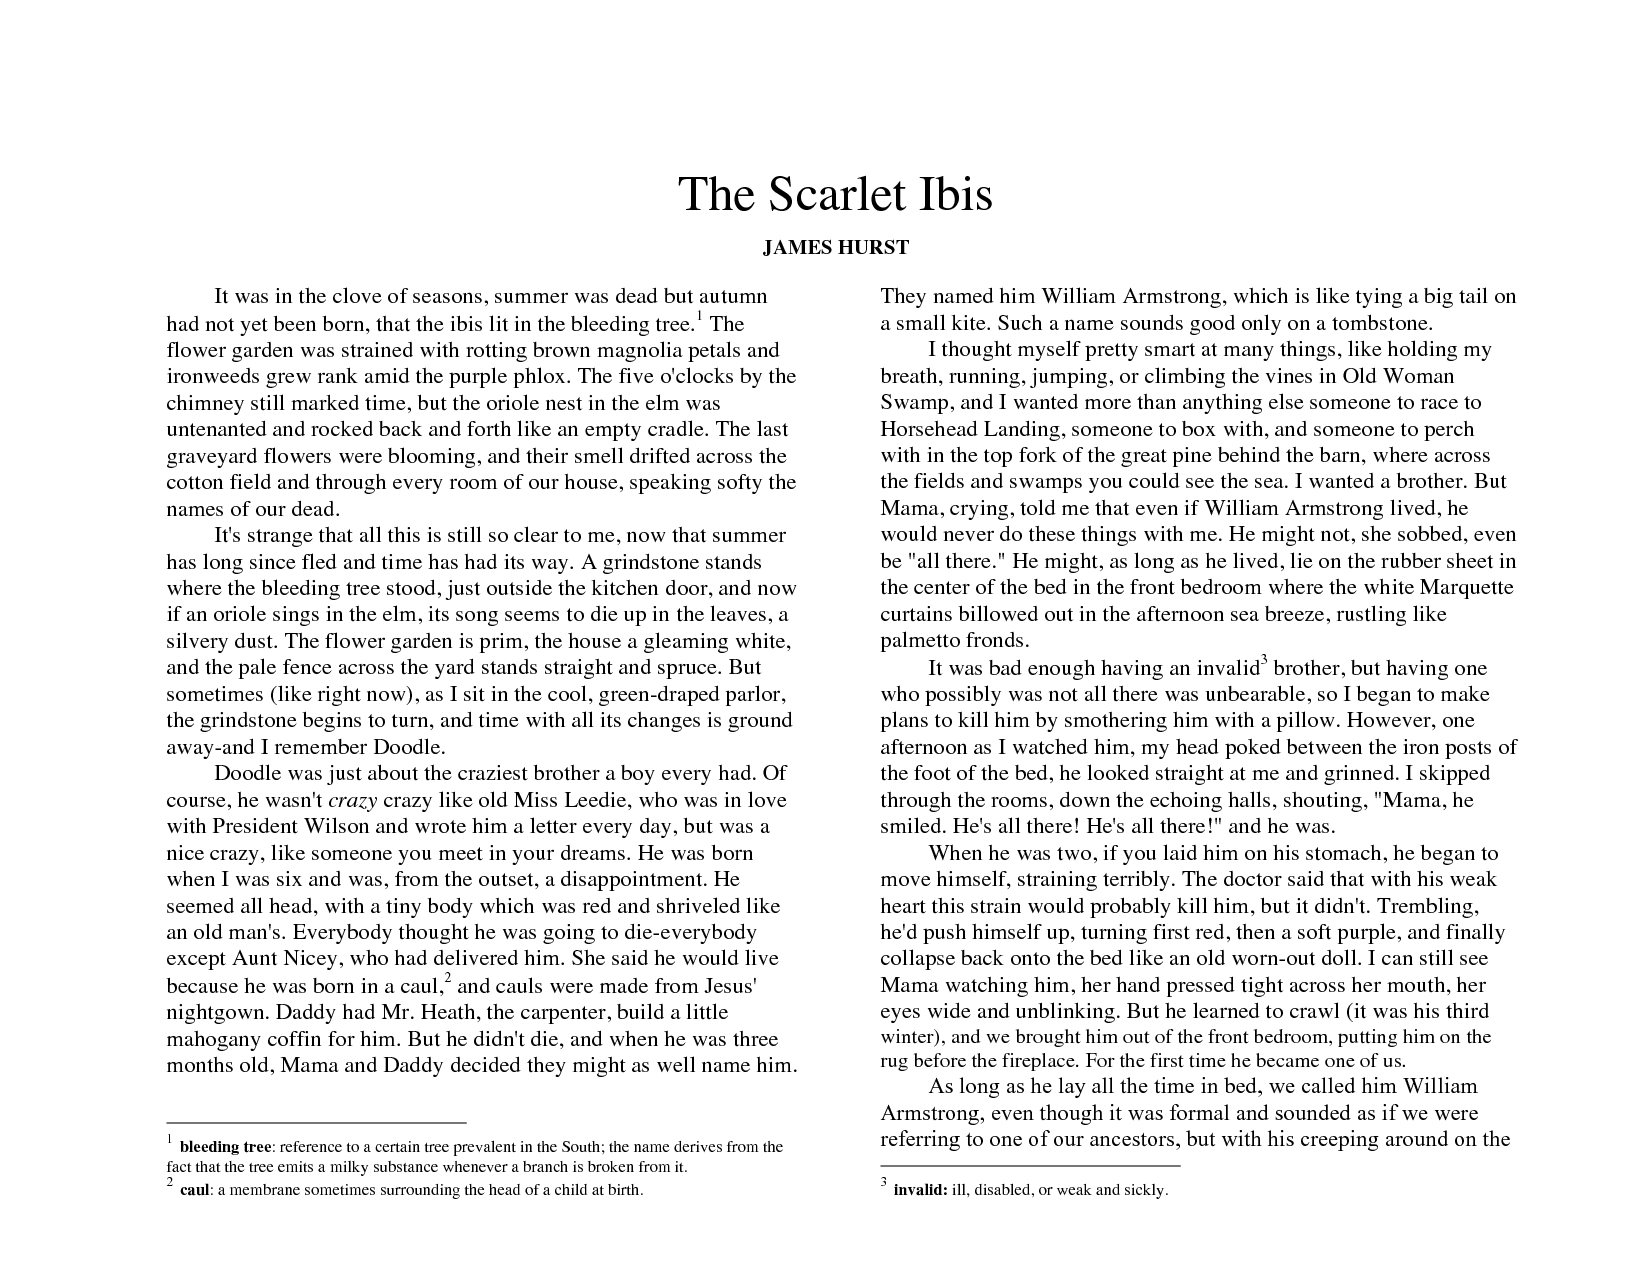 002 Essay Example The Scarlet Best Ibis Thesis Questions Discussion Full